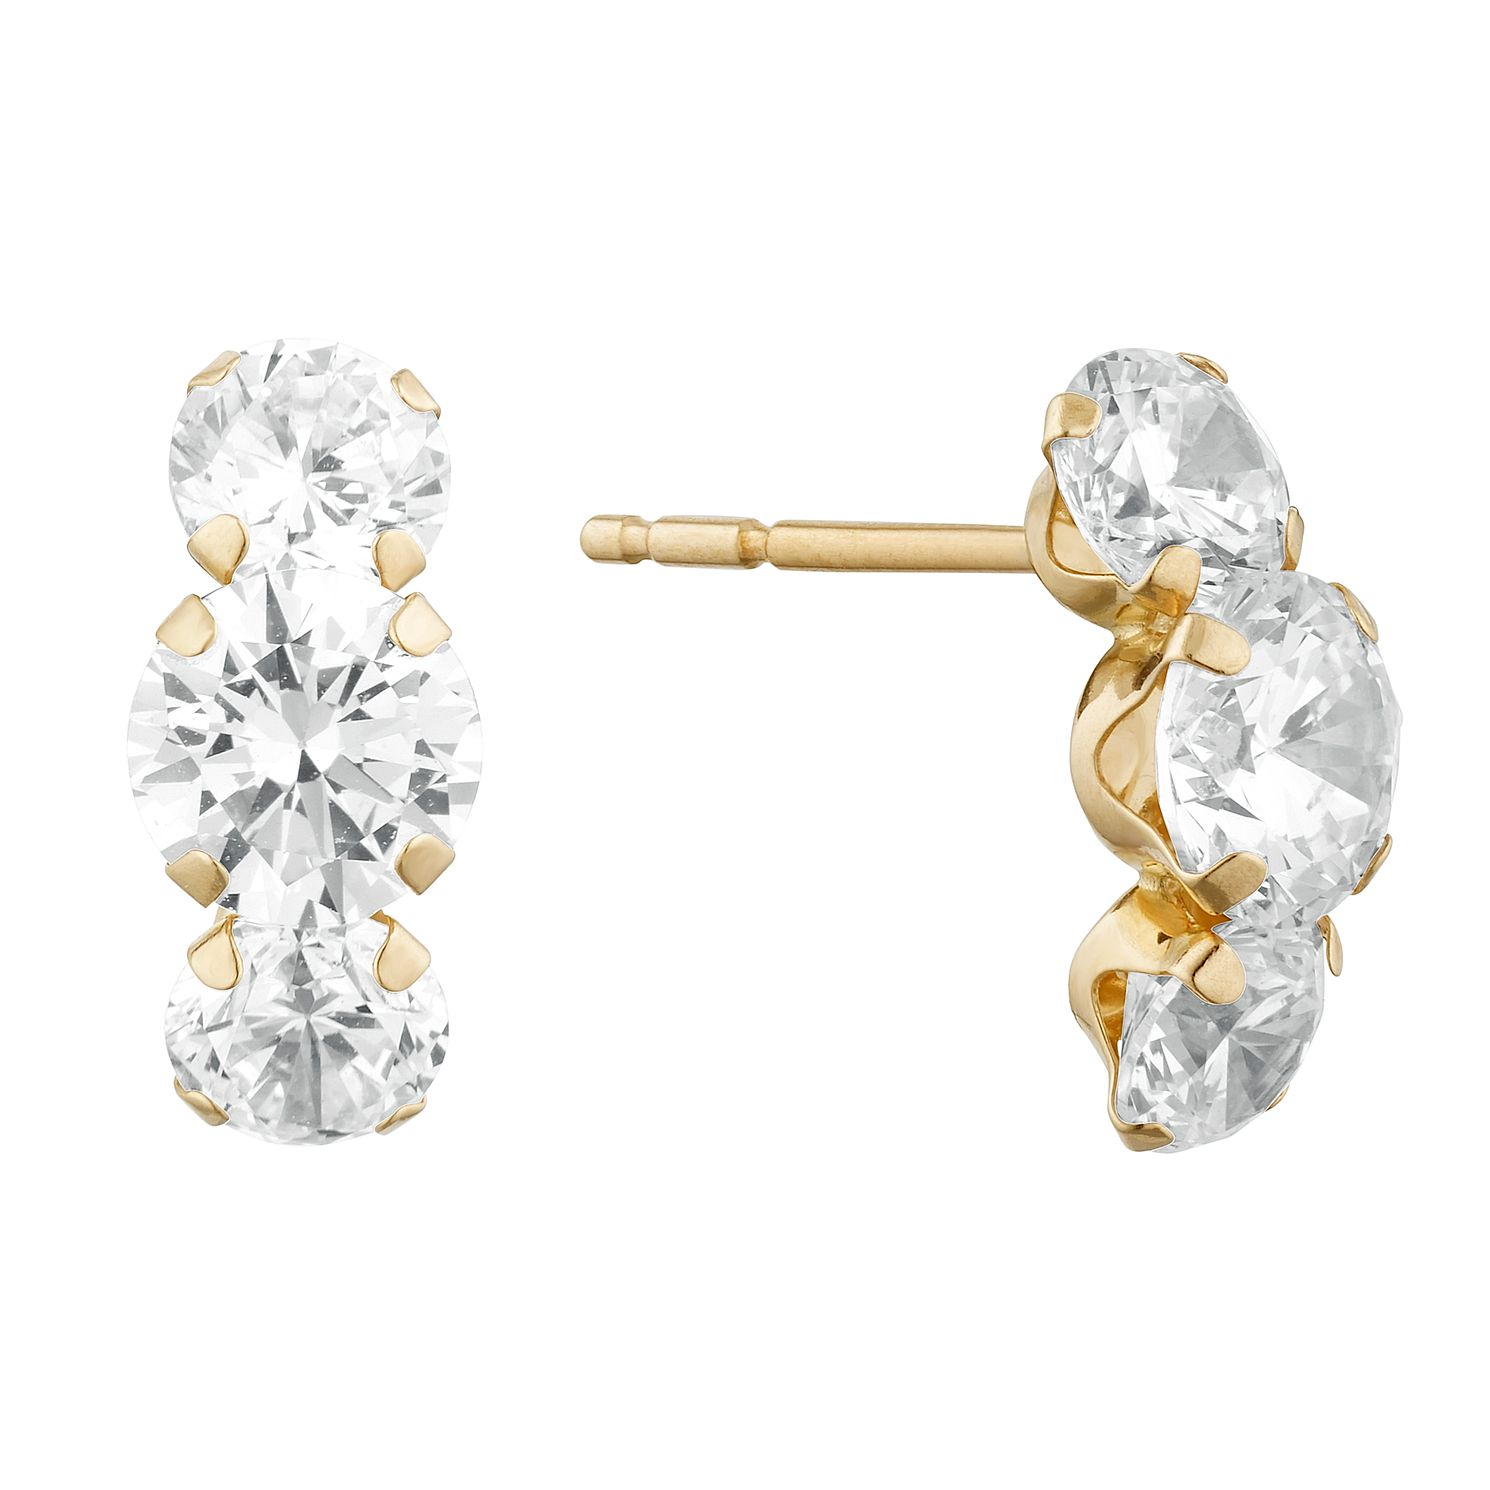 9ct Yellow Gold 3 Cubic Zirconia Stud Earrings - Product number 9668594